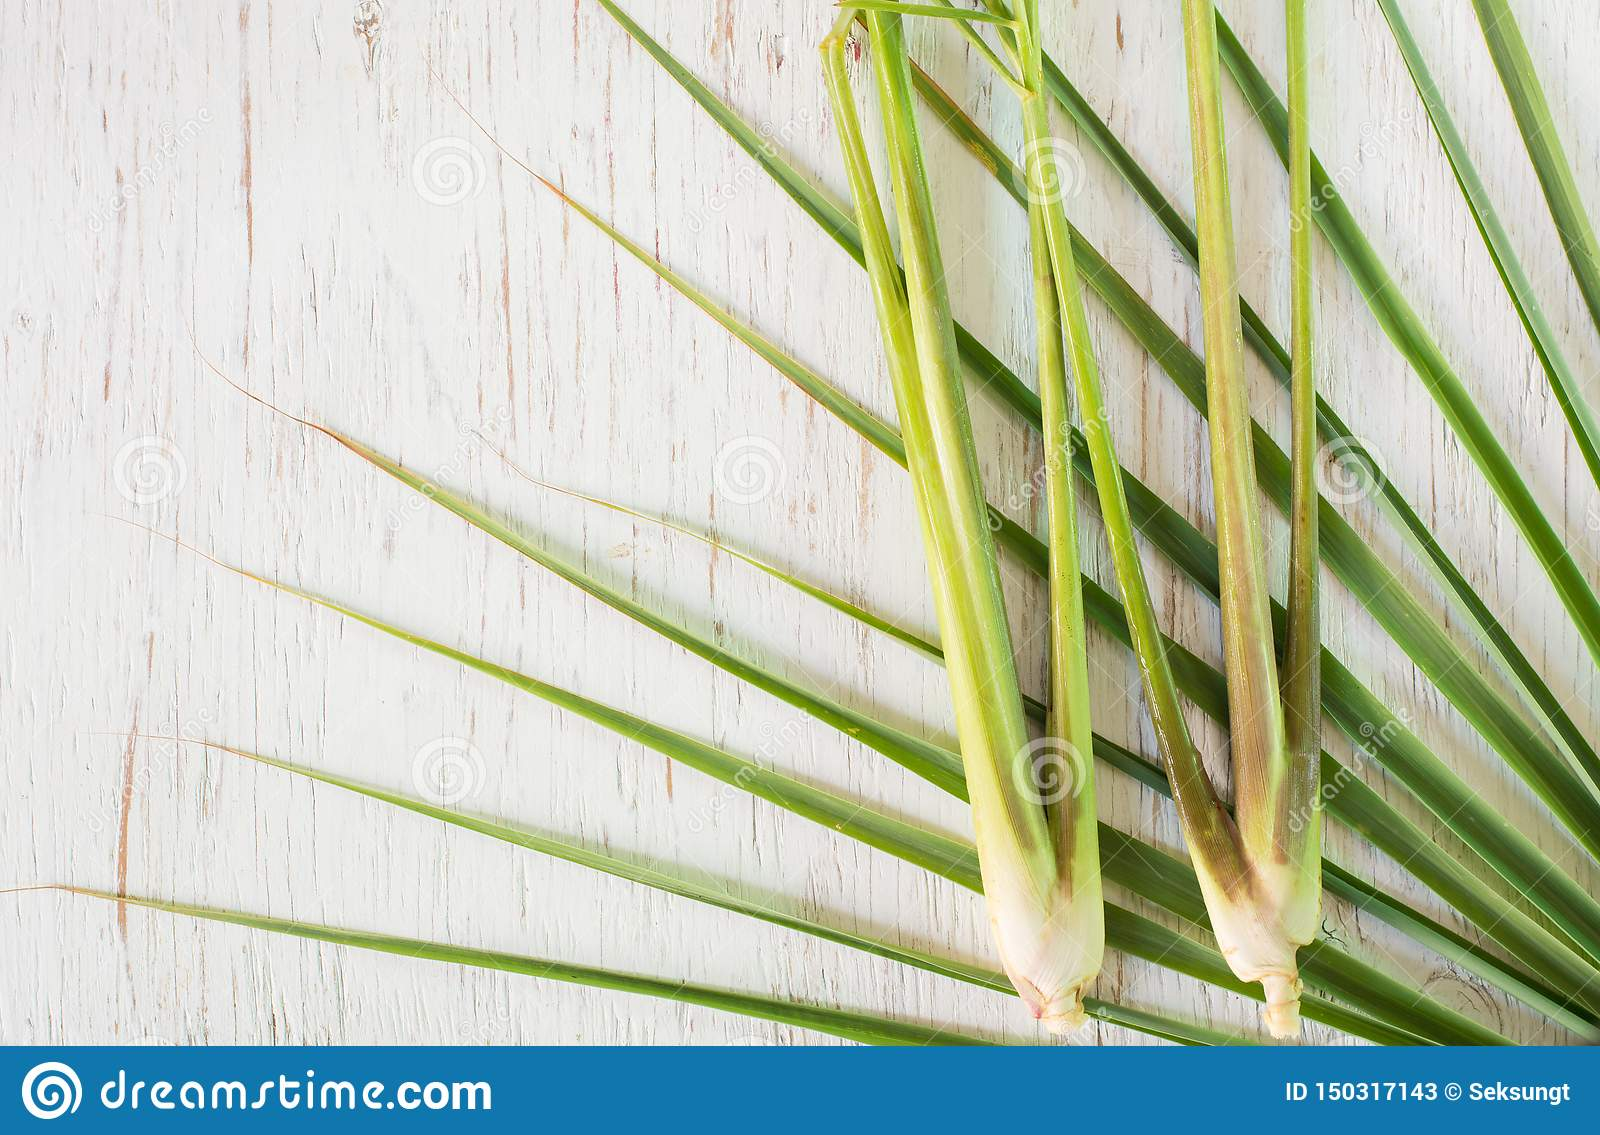 Top View Lemon Grass On Wood Background Stock Image Image Of